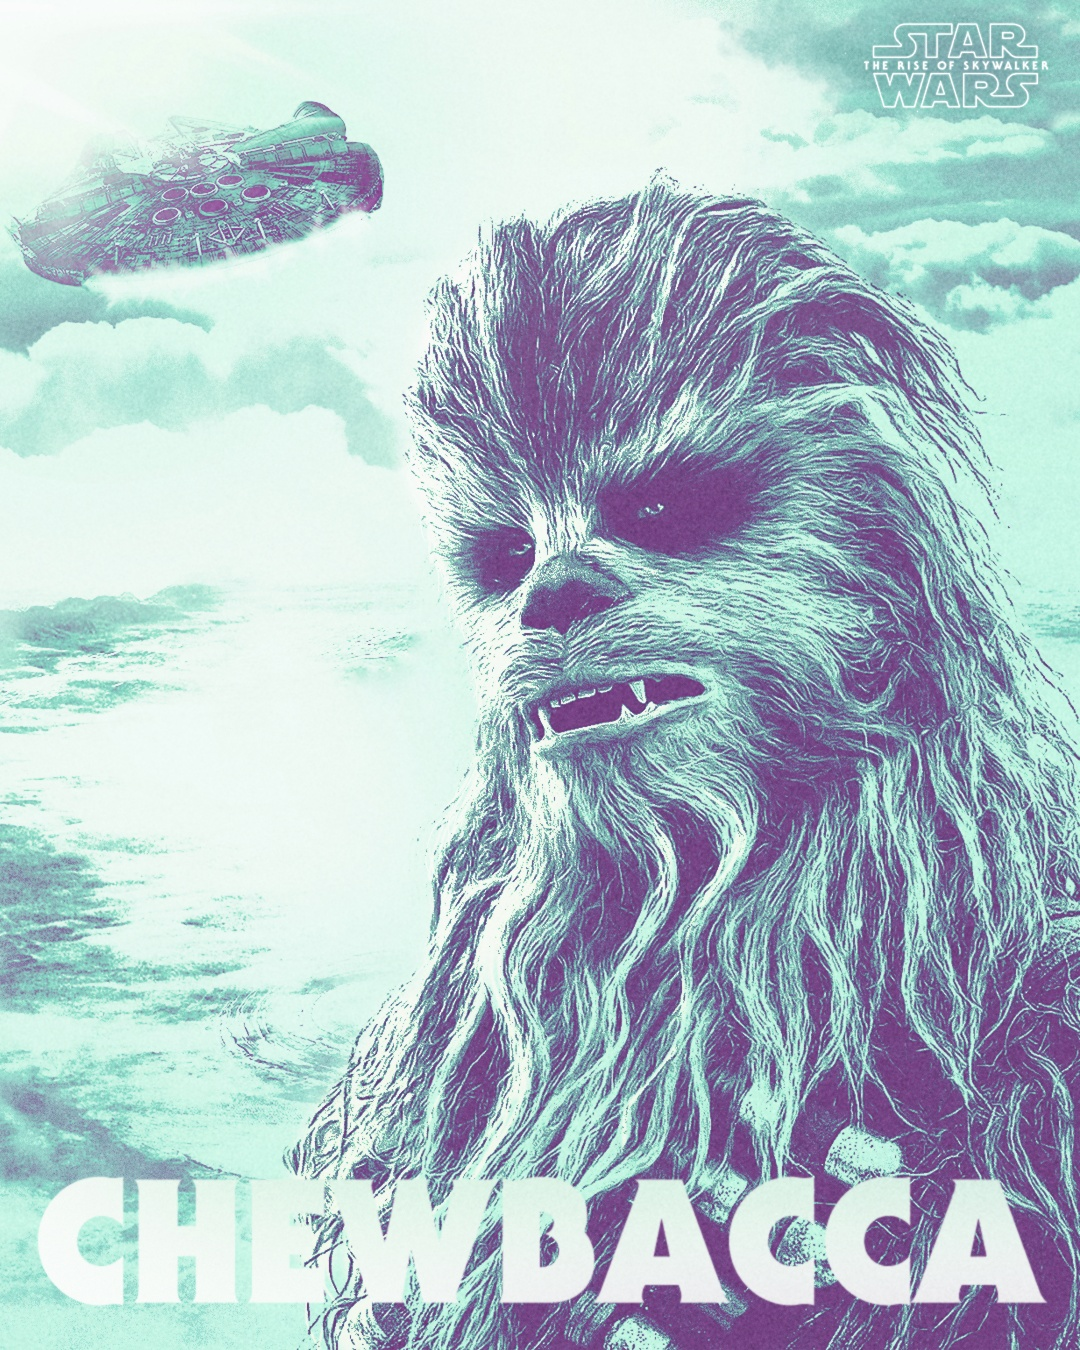 Chewbacca poster I made, thought you guys might like it